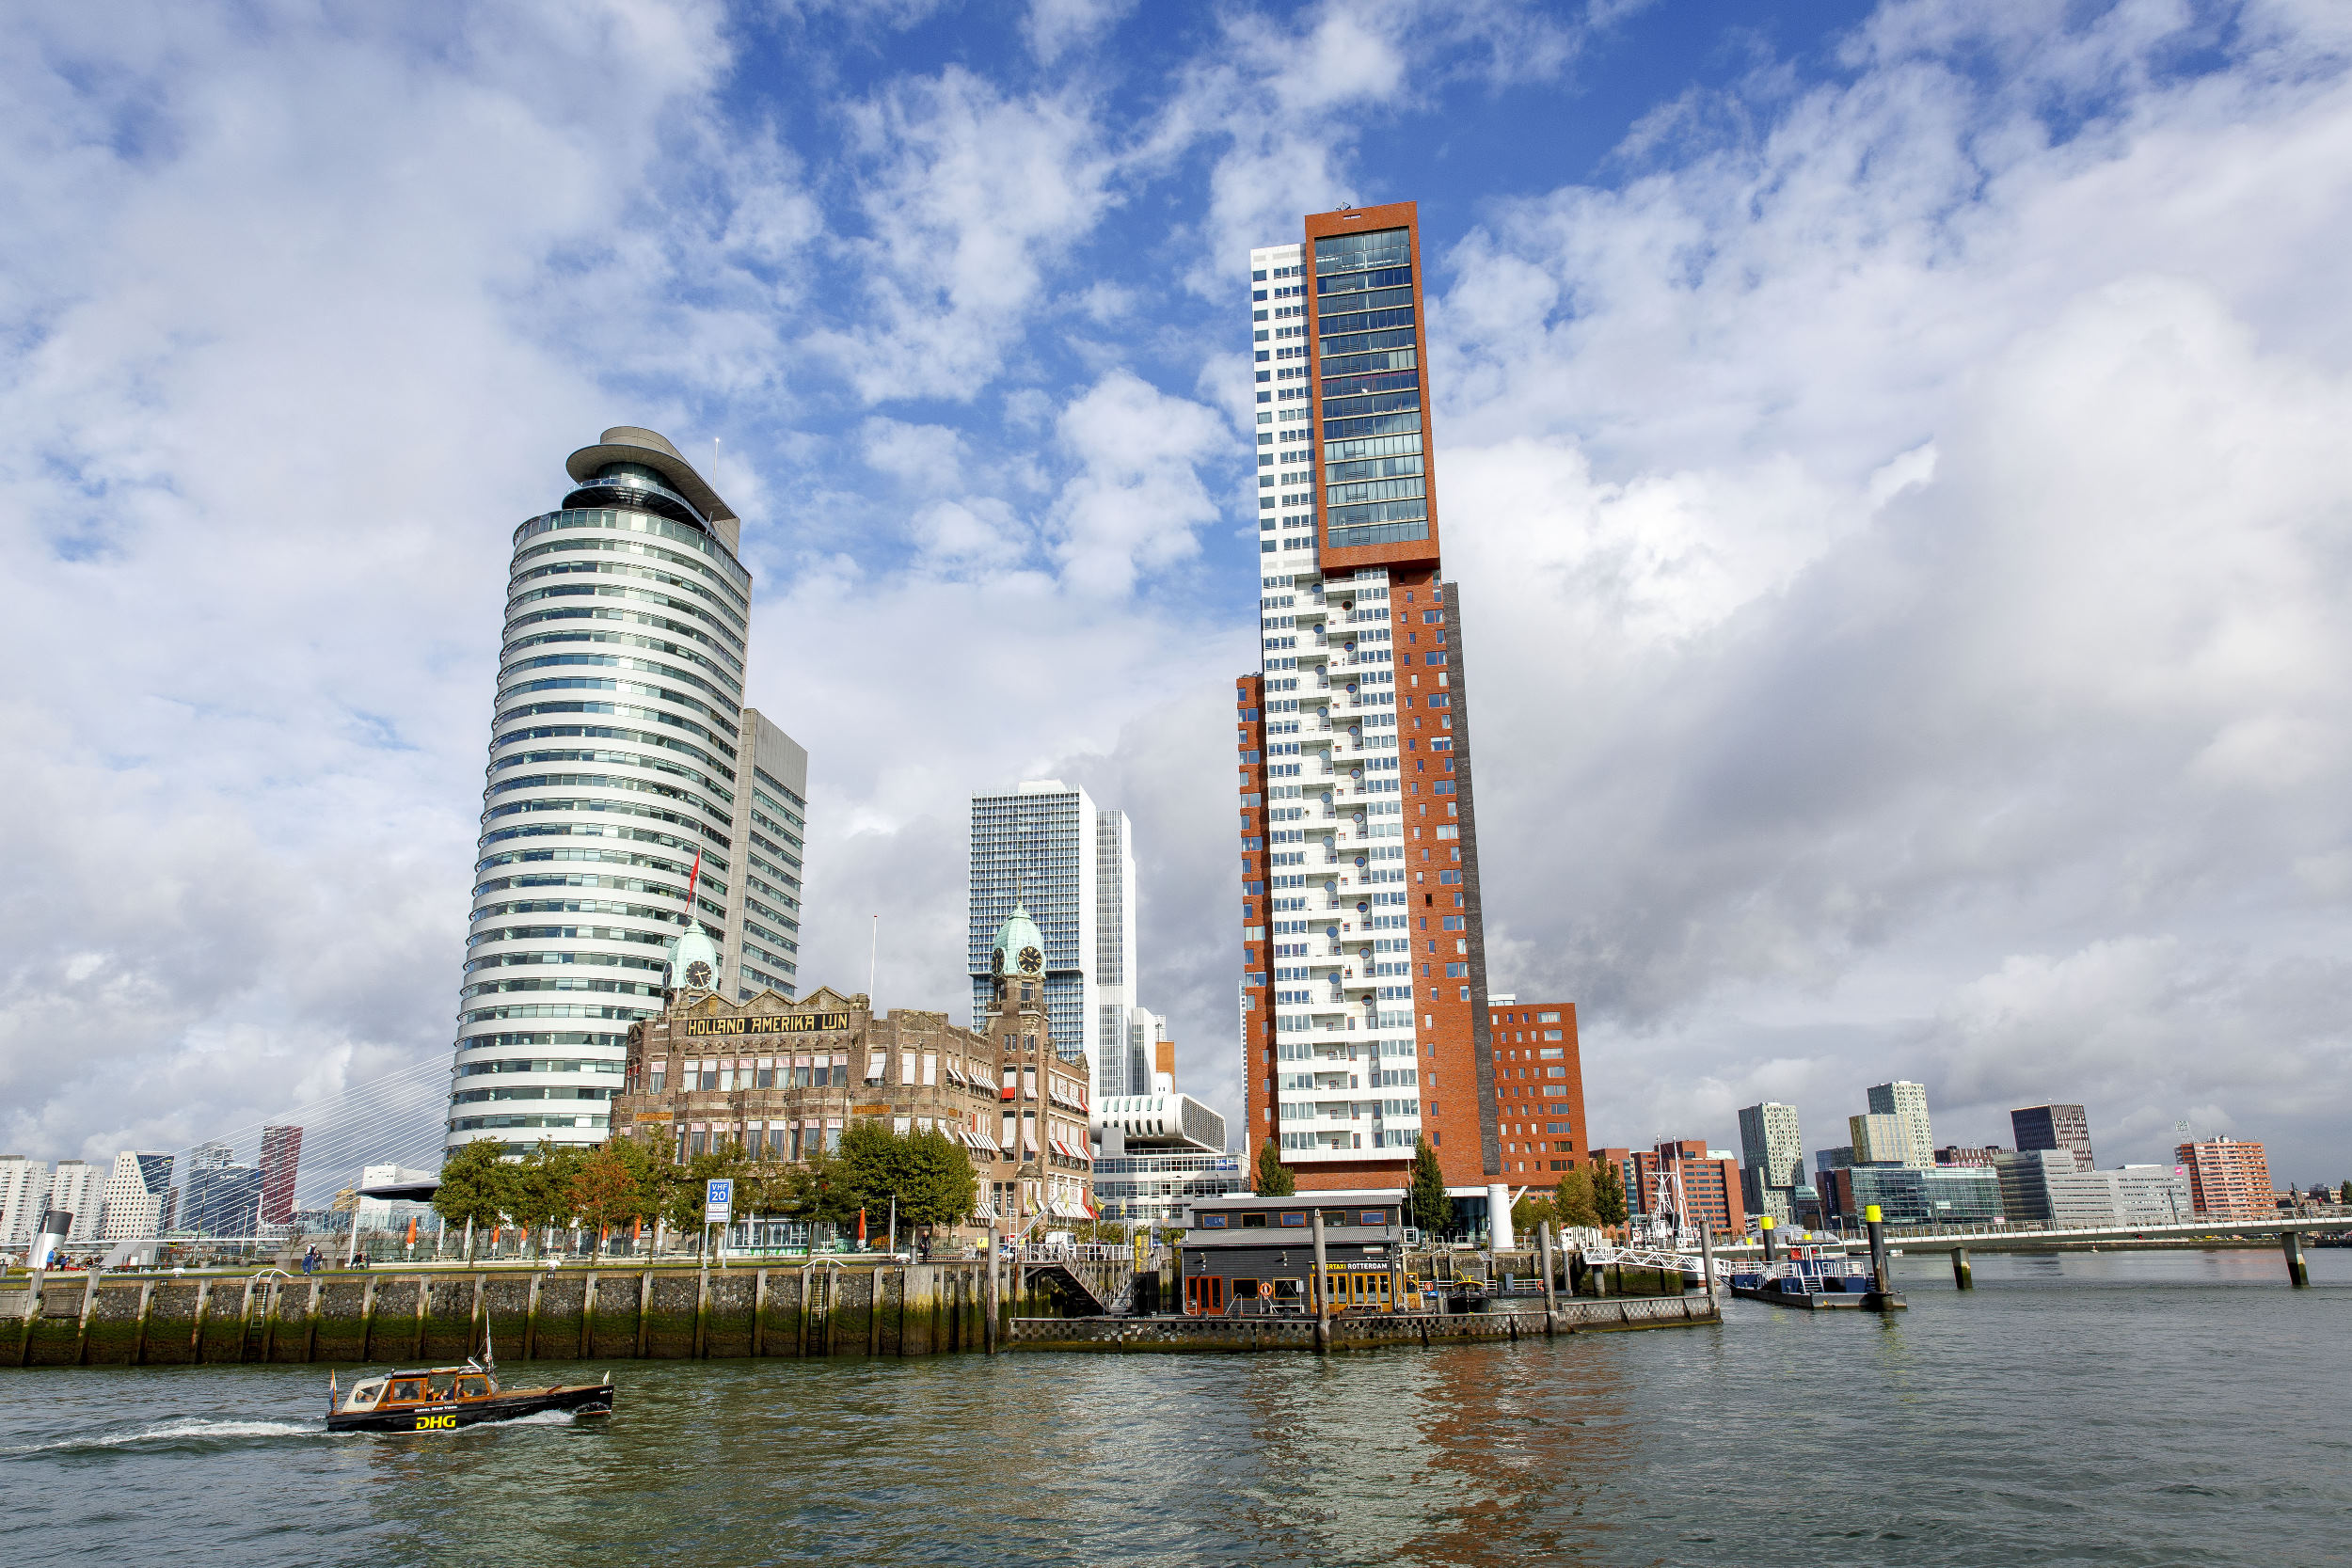 Rotterdam Haven Hotel New York Kop van Zuid Watertaxi Wilhelminapier